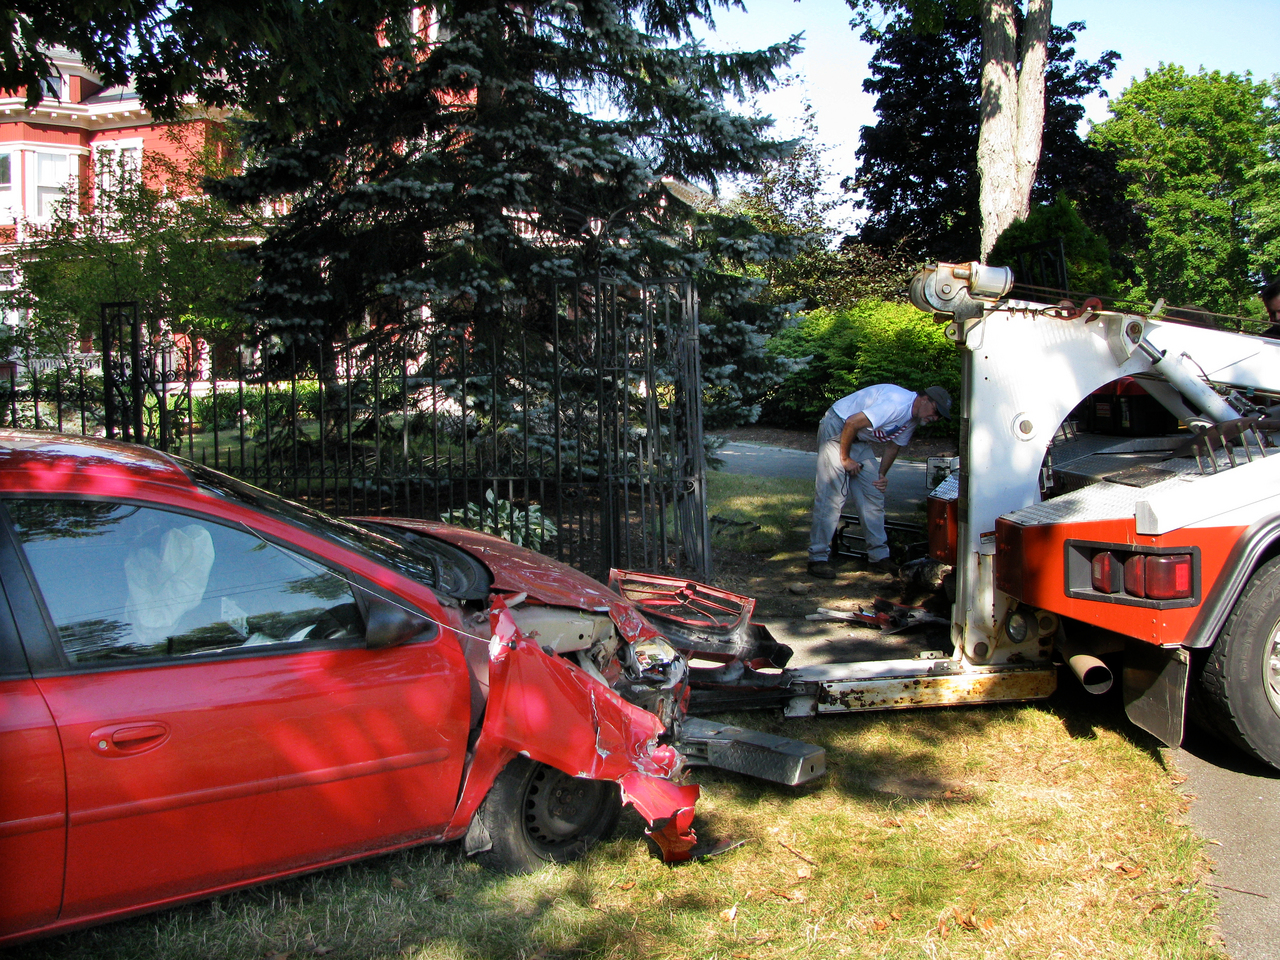 A wrecker prepares to remove a car after it crashed in to the front gate of Stephen and Tabitha King's West Broadway home in Bangor on Sunday, August 29, 2010. Renee Harris, 25, of Alton told police that she hit the gate with her 2011 Dodge Neon while avoiding another car that was driving on her side of the street. (Photo Courtesy of Jeff Kirlin via  Bangor Daily News)